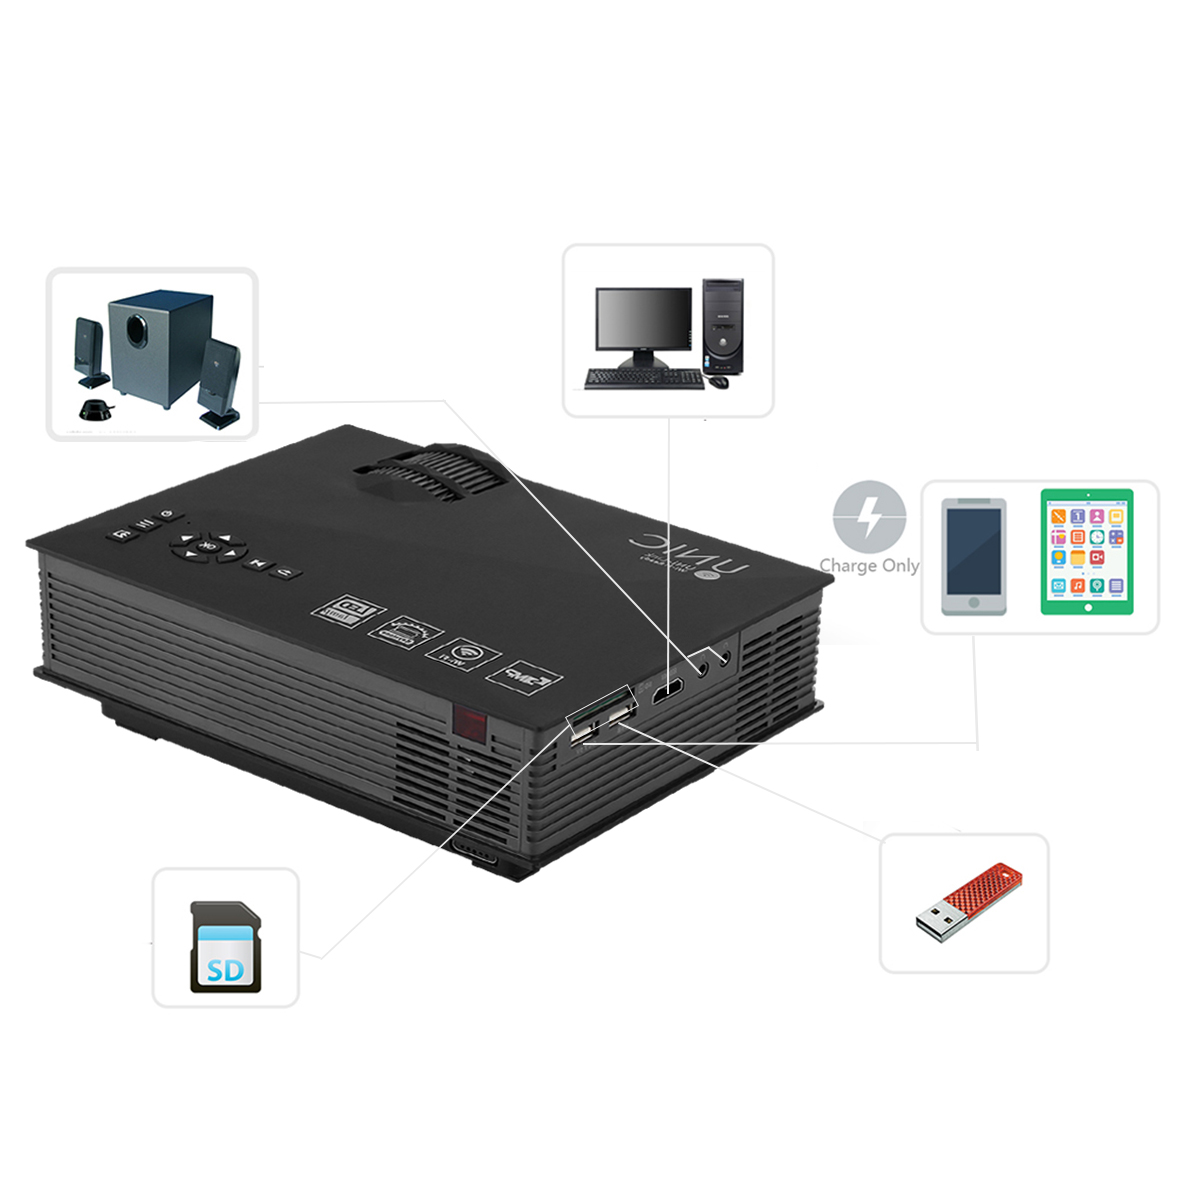 Unic Uc46 Portable Mini Led Wireless Projector Buy Online At Best Proyektor Uc40 Package Contents 1 X Simplified Mirco Remote Power Plug Cable English User Manual